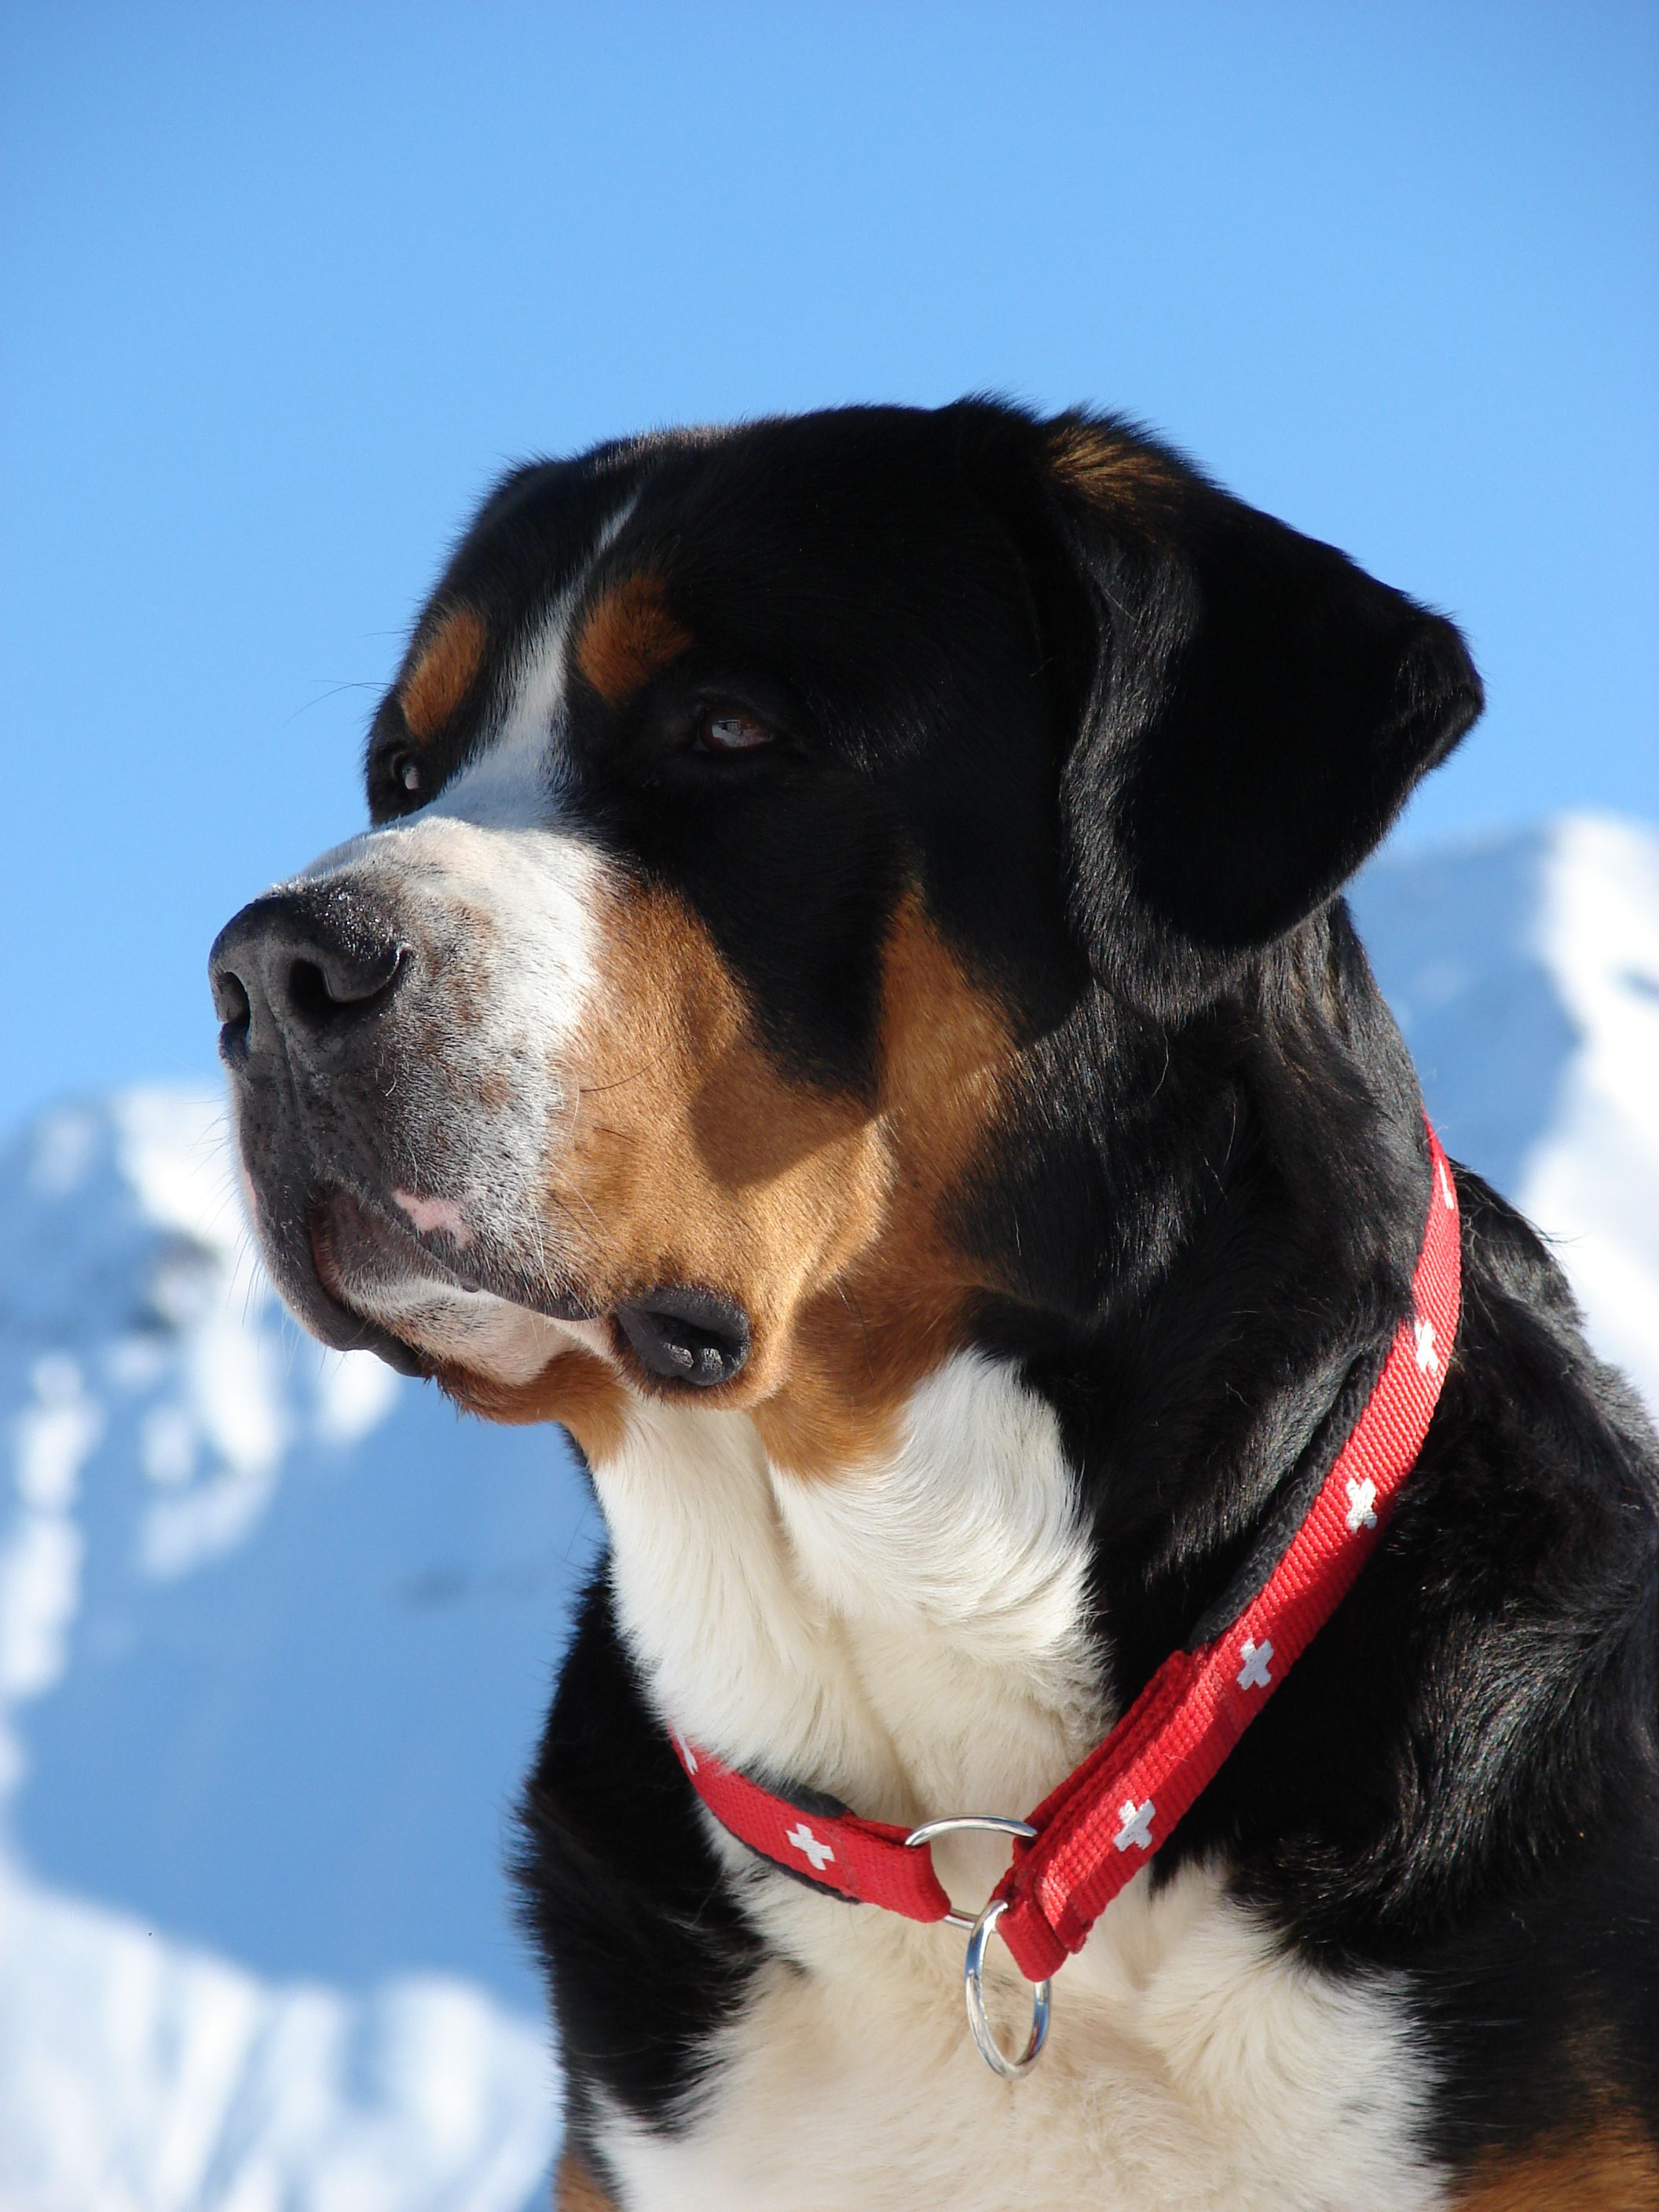 Greater Swiss Mountain Dog Grosser Schweizer Sennenhund Grand Bouvier Suisse Appenzeller Sennenhund Entlebuc Dog Breeds Greater Swiss Mountain Dog Dogs